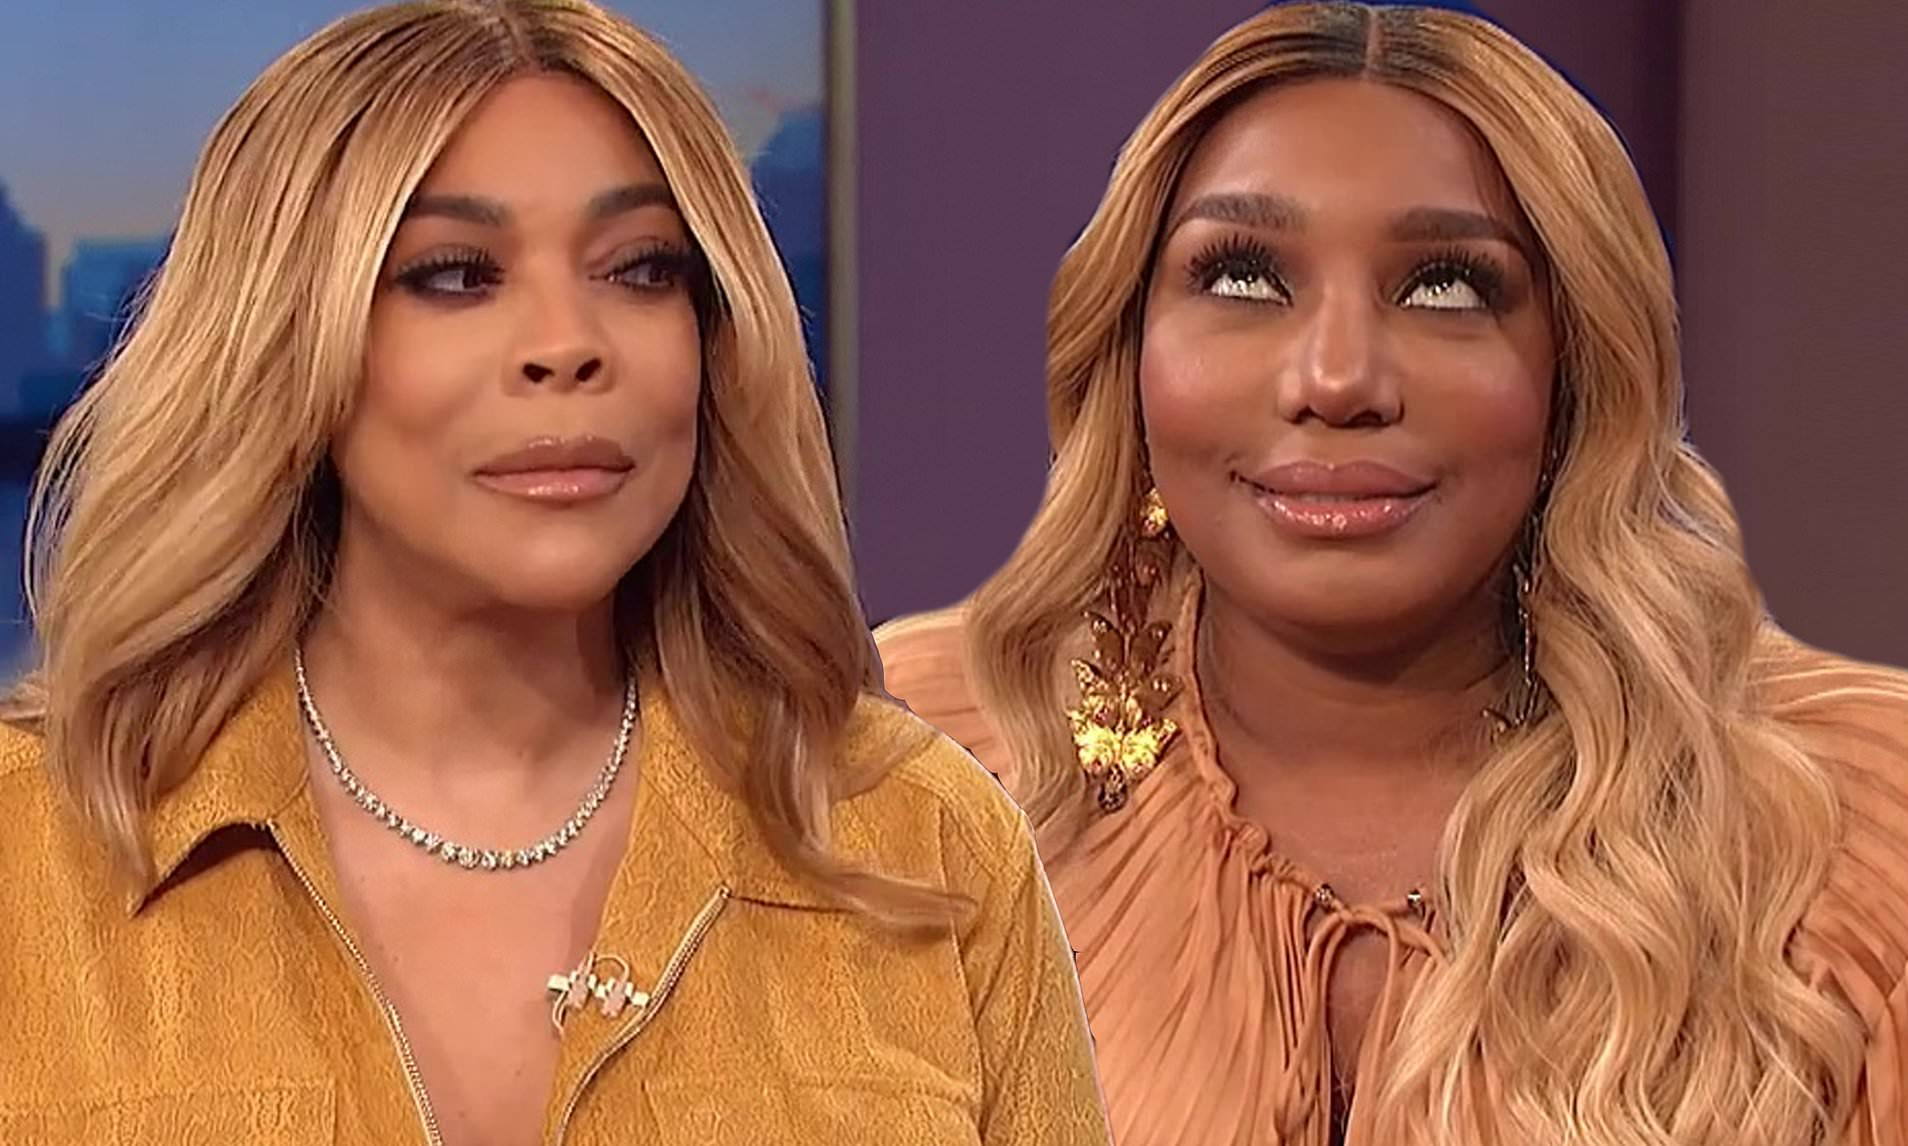 NeNe Leakes Publicly Professes Her Love For Wendy Williams - Check Out Their Videos Together